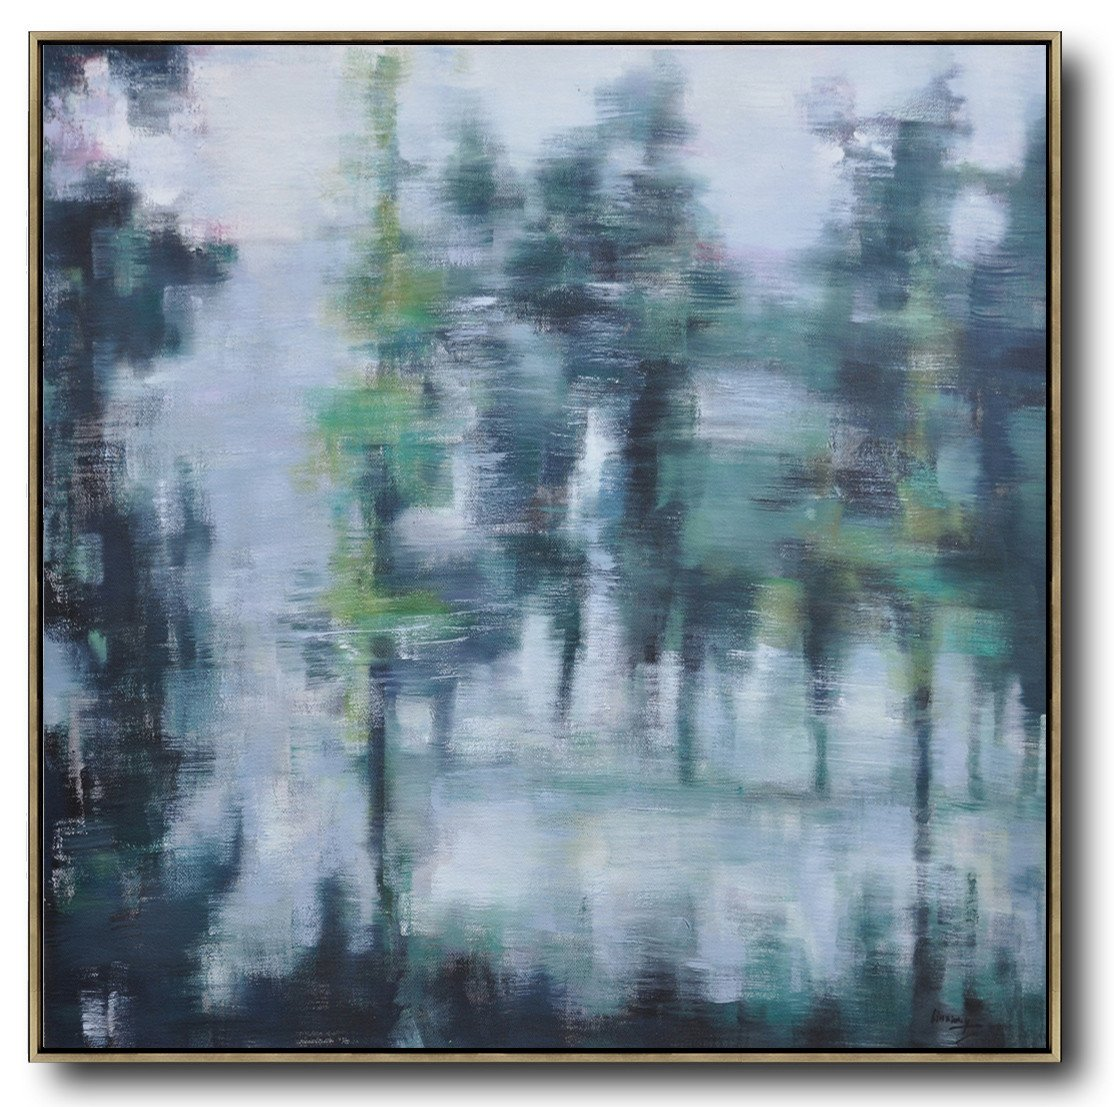 Large Abstract Painting Canvas Art,Abstract Landscape Oil Painting,Acrylic Minimailist Painting,White,Grey,Dark Green.etc